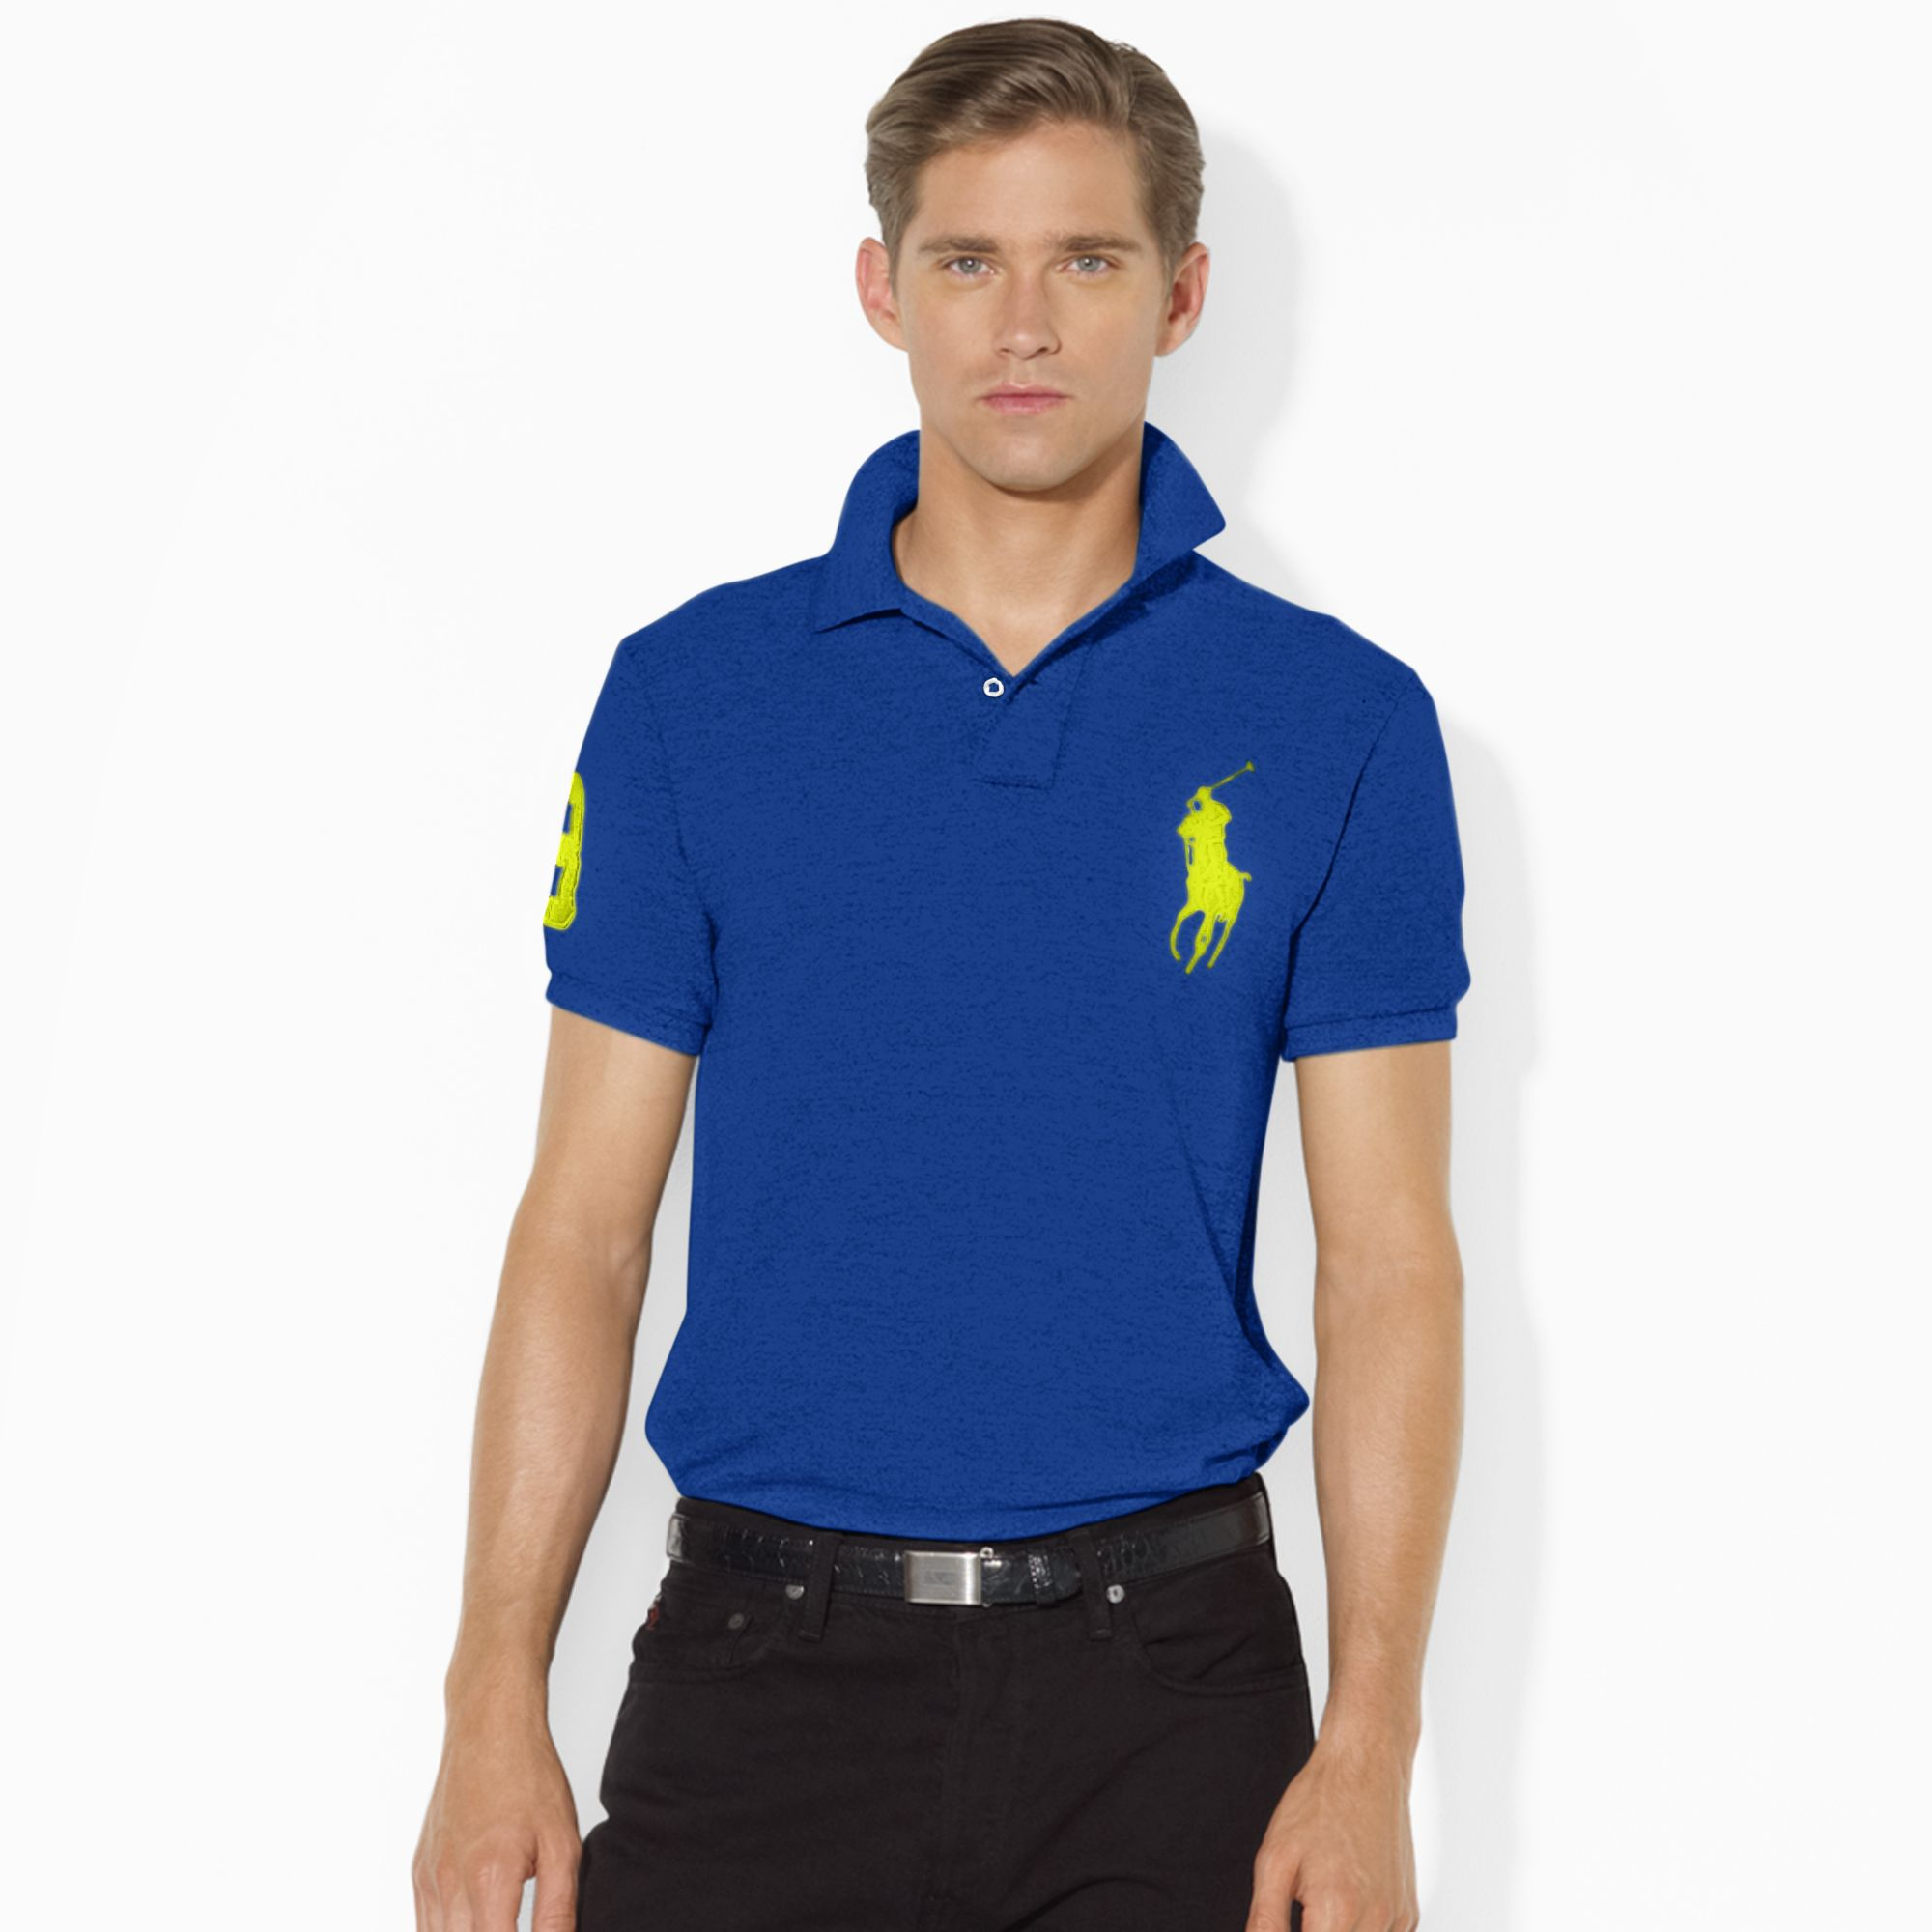 polo ralph lauren big pony polo shirt in blue for men lyst. Black Bedroom Furniture Sets. Home Design Ideas